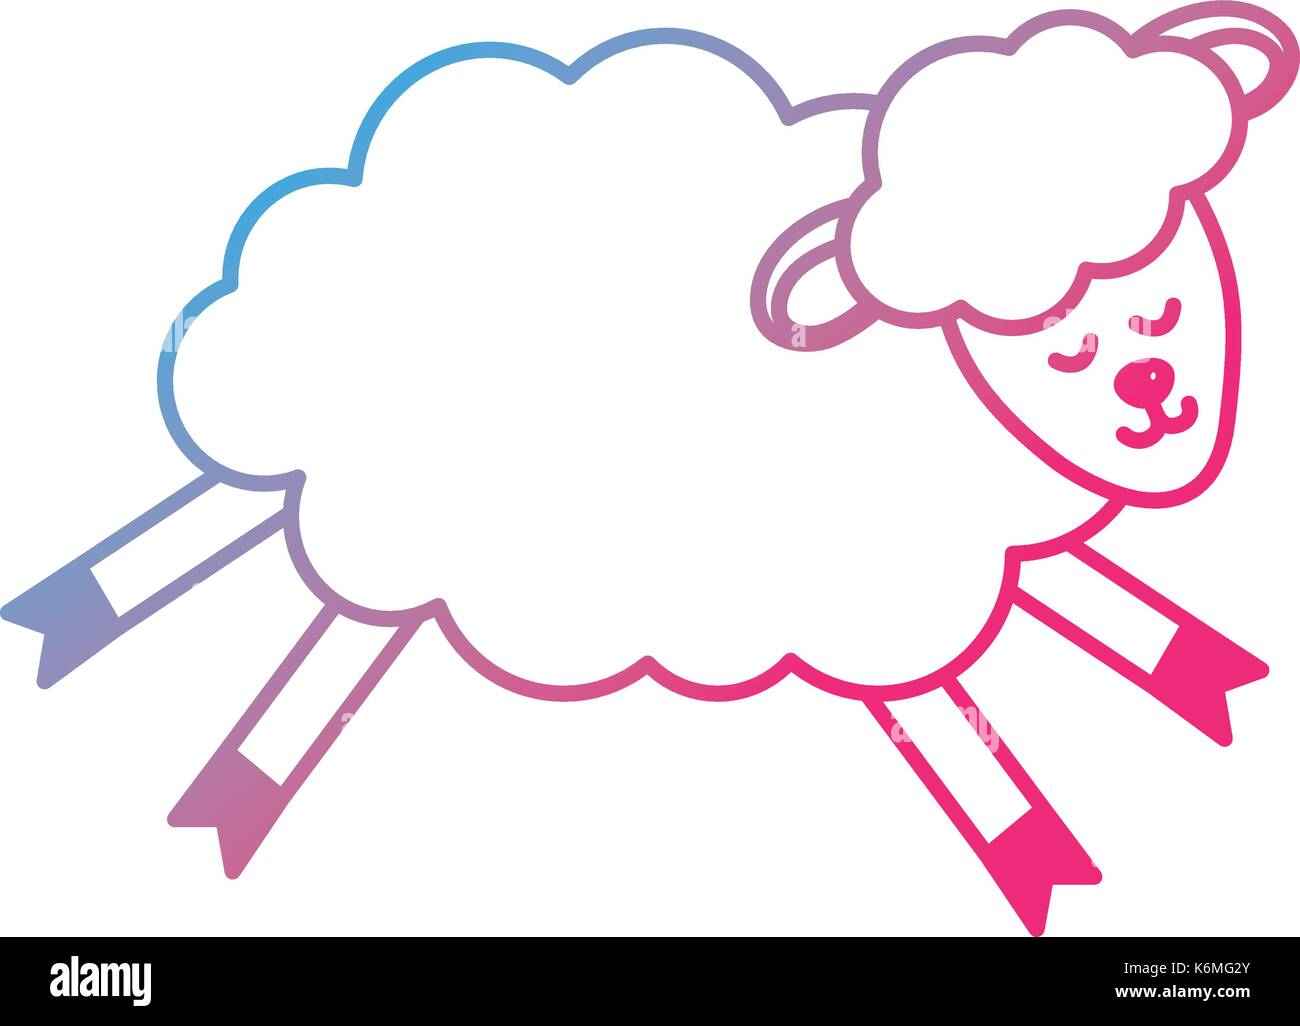 line cute sheep animal with wool design - Stock Vector